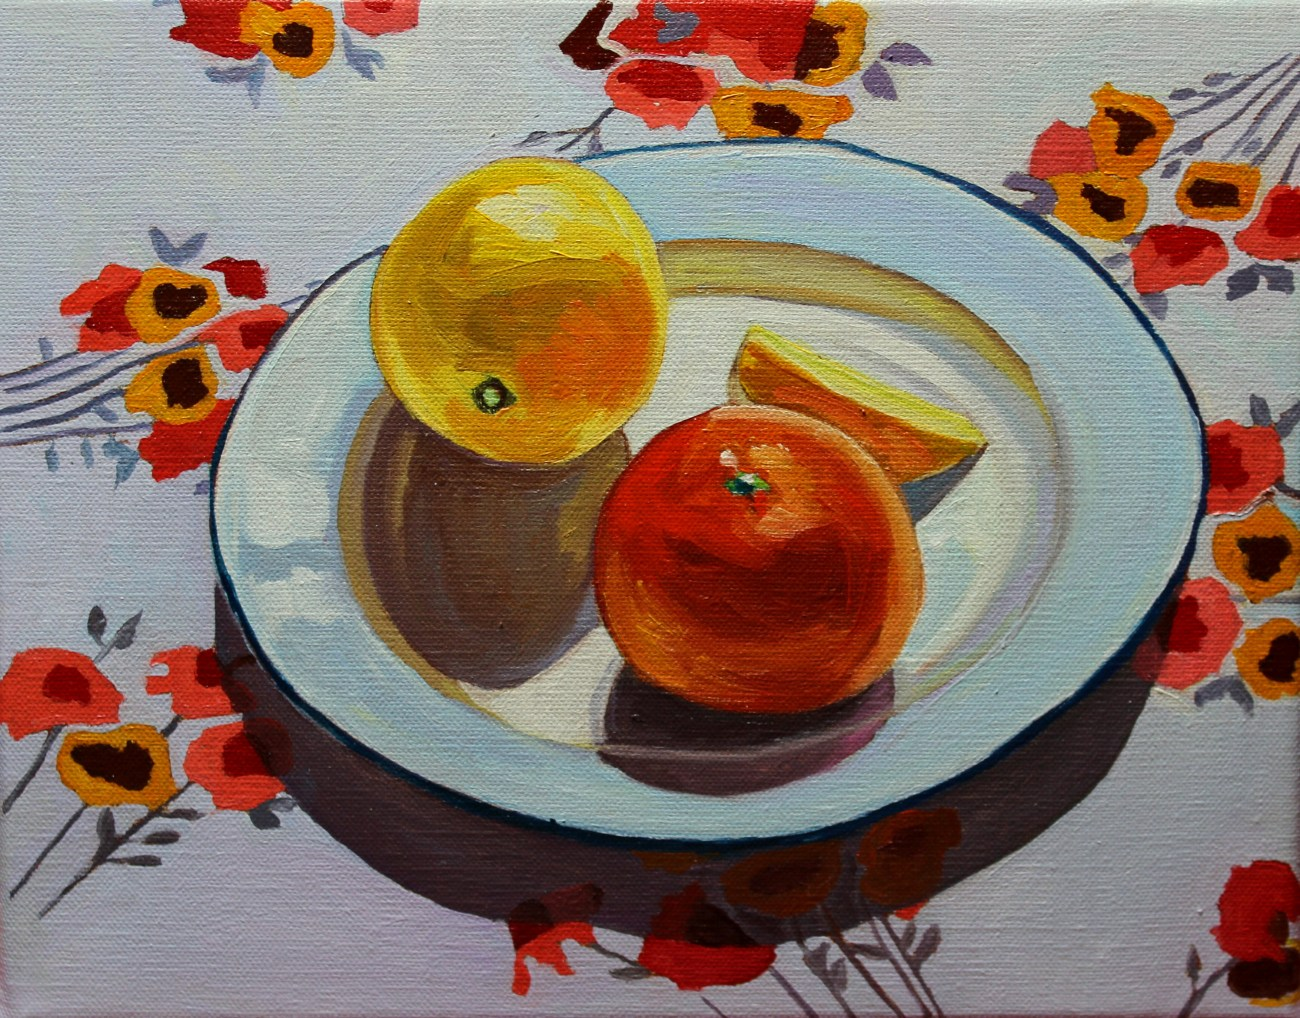 Still life with patterned cloth #2